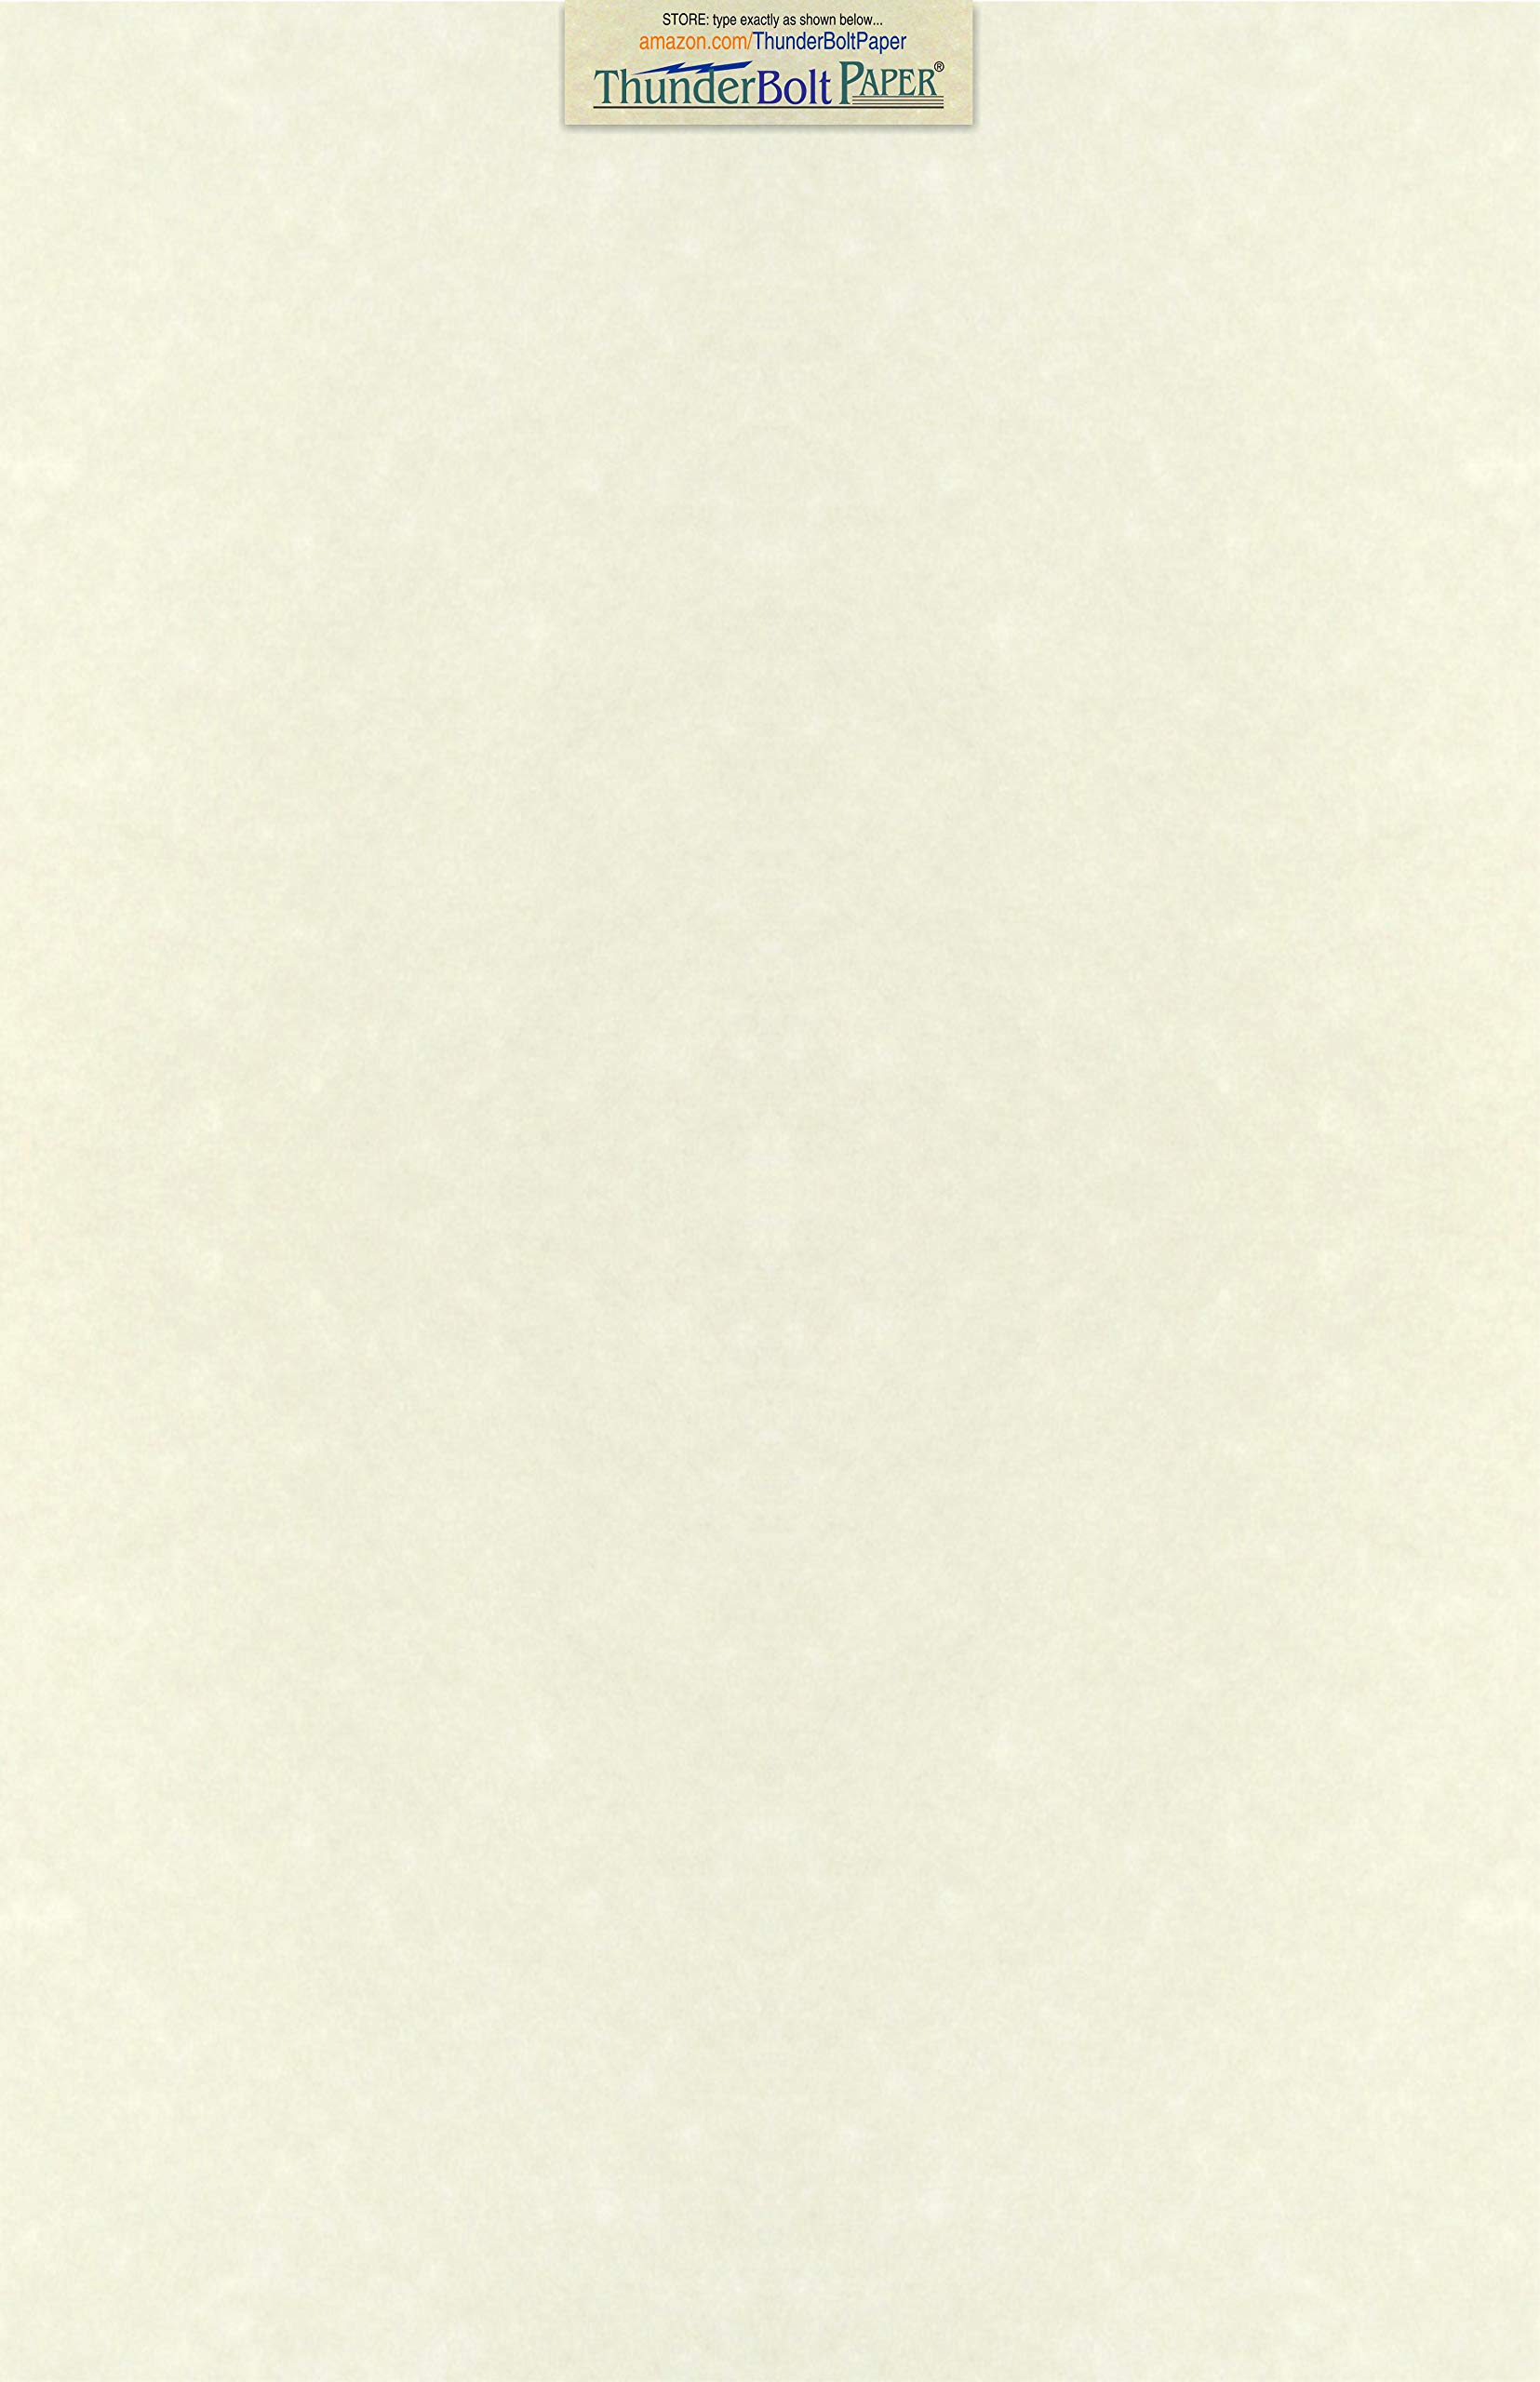 50 Soft White Parchment 60lb Text Weight Paper - 11'' X 17'' (11X17 Inches) Tabloid|Ledger|Booklet Size - 60 Pound is Not Card Weight - Vintage Colored Old Parchment Semblance by ThunderBolt Paper